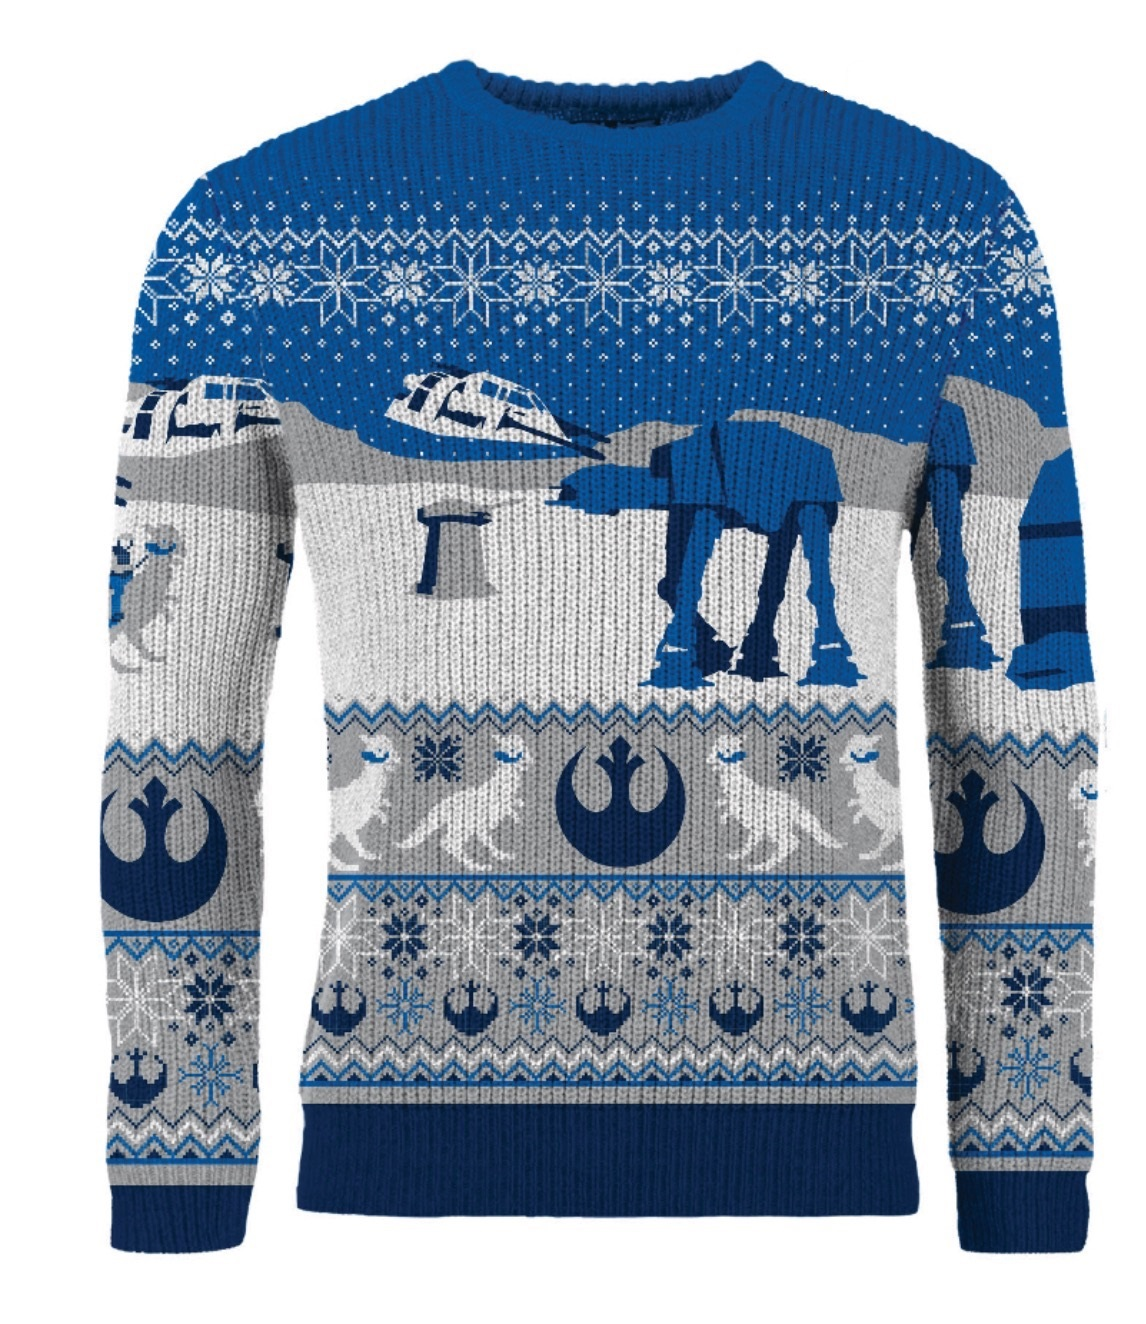 Star Wars Ugly Christmas Sweaters – Suit Up! Geek Out!